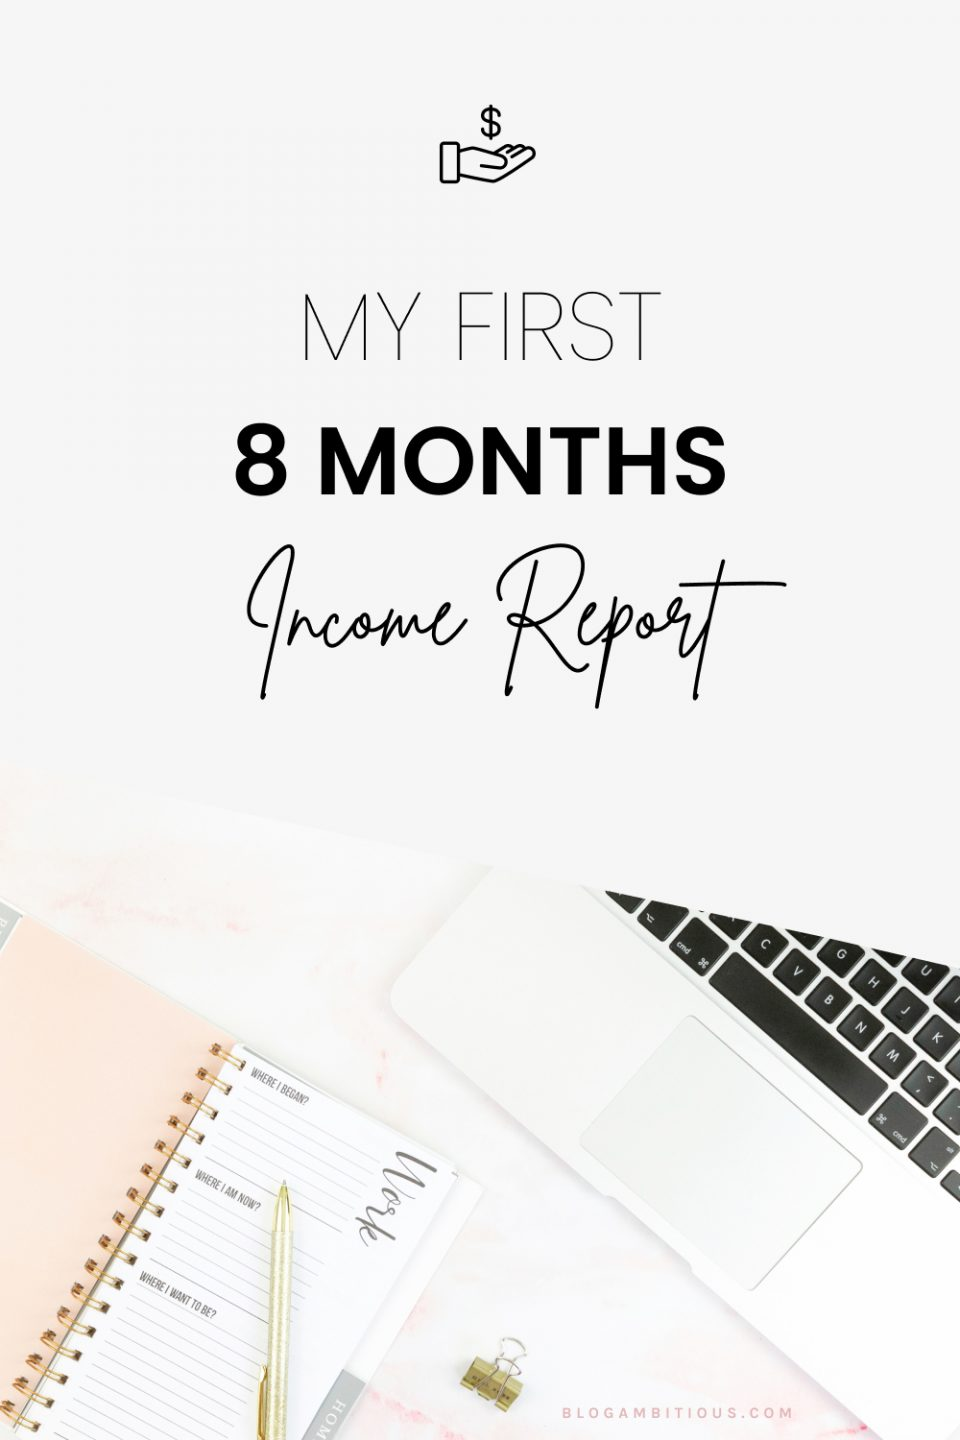 A Detailed Income Report of My First 8 Months Blogging – $1,876